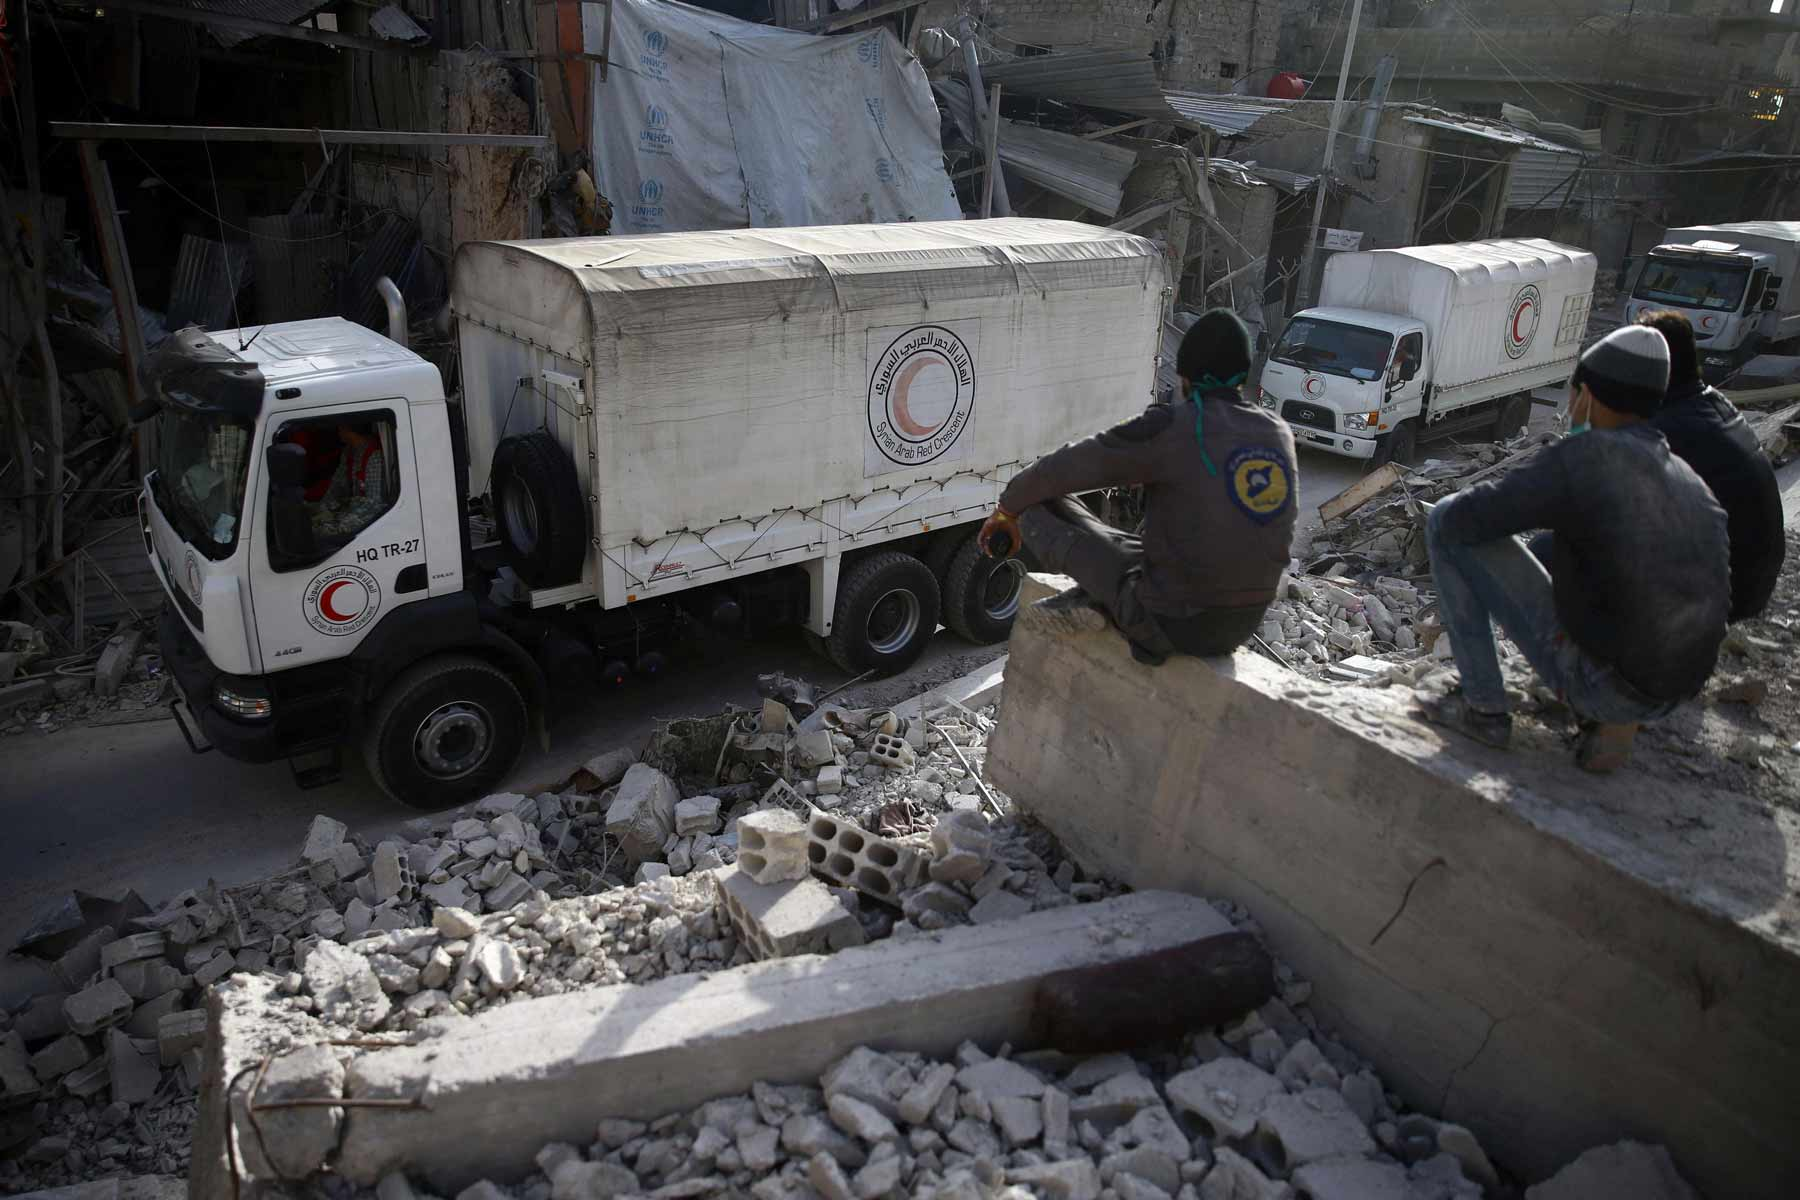 Civil defense volunteers sit on the rubble watching Syrian Red Crescent convoy in besieged Duma - March 2018 (Reuters)